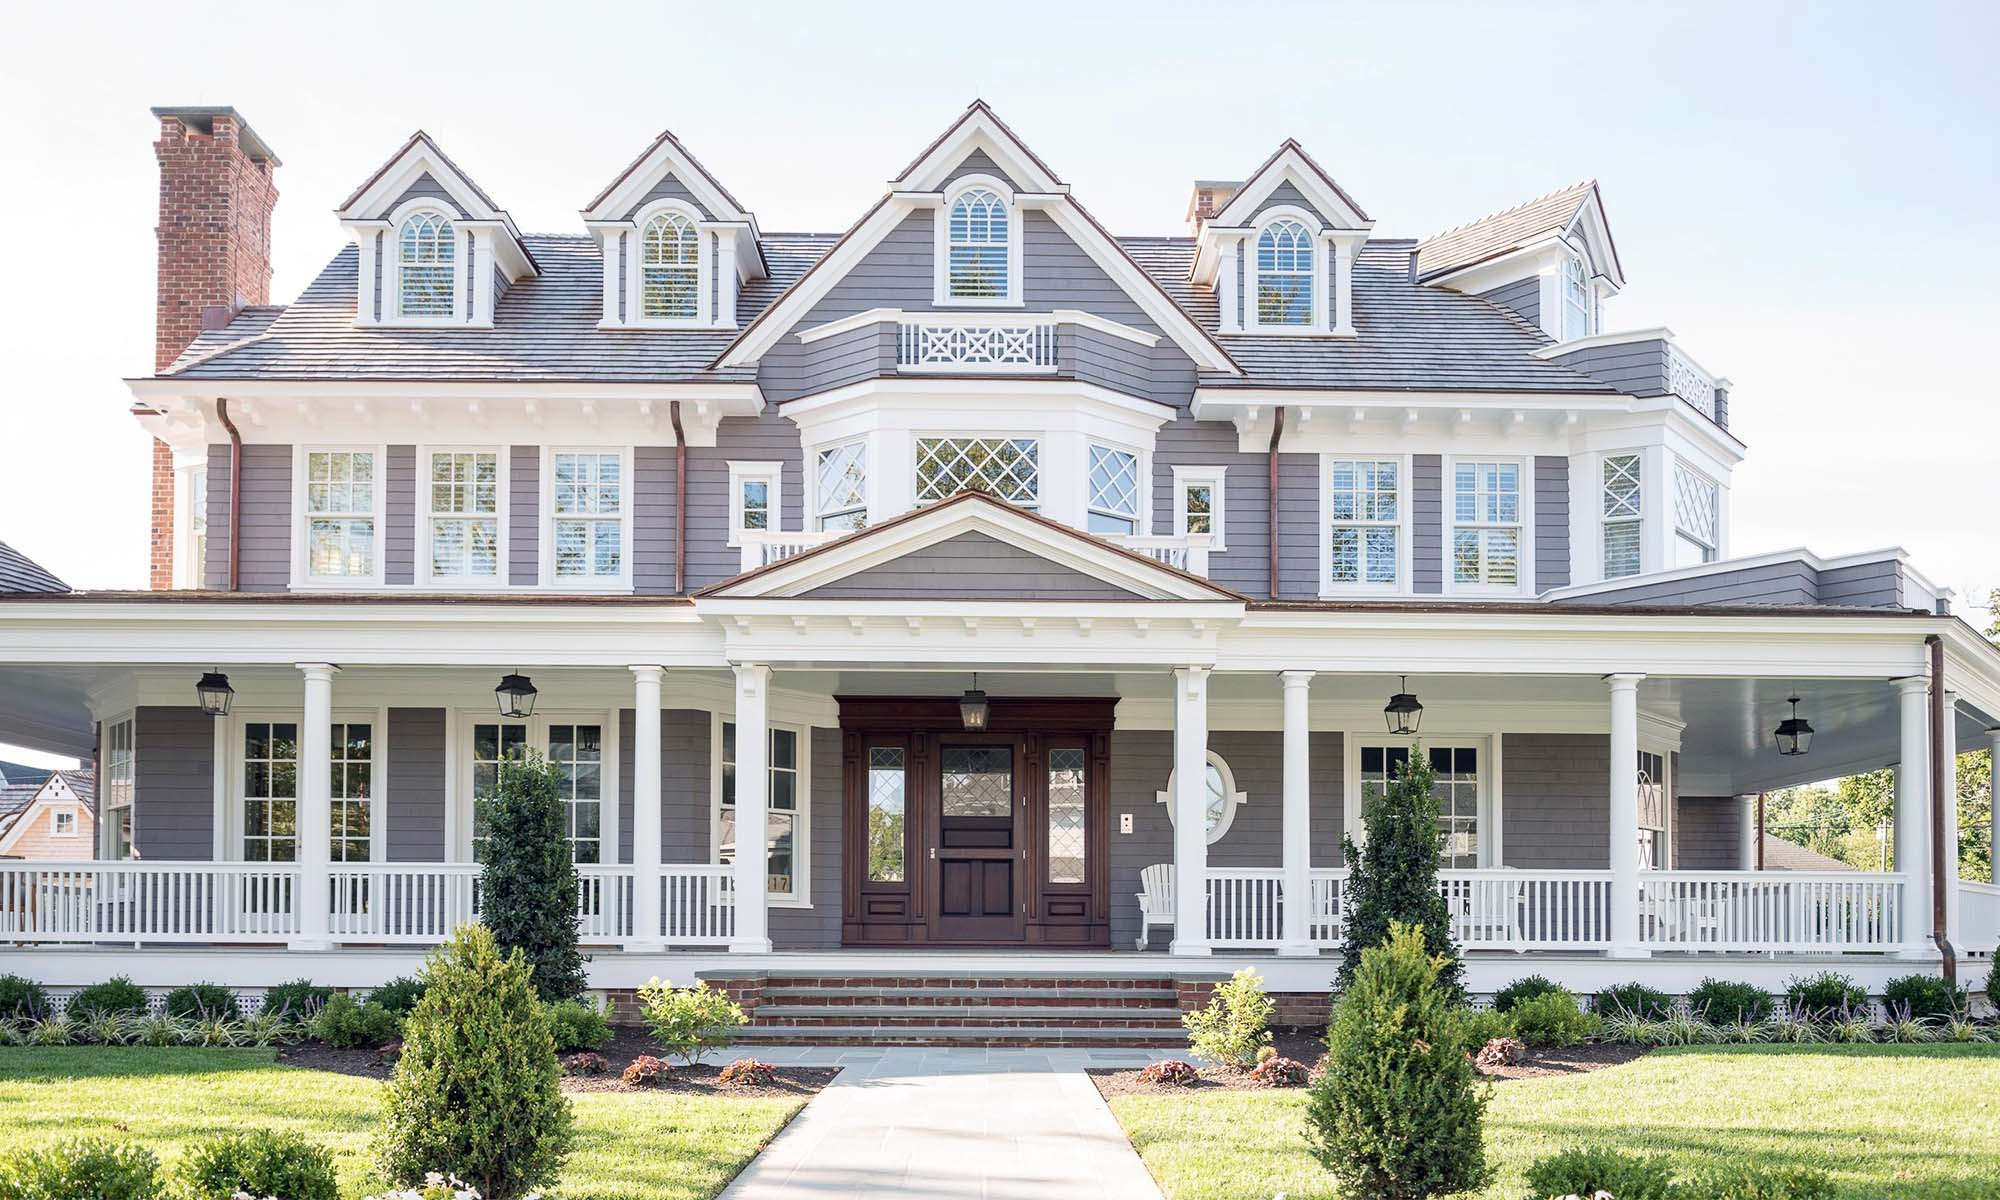 stunning gray and white custom home with dark wood front door and red brick